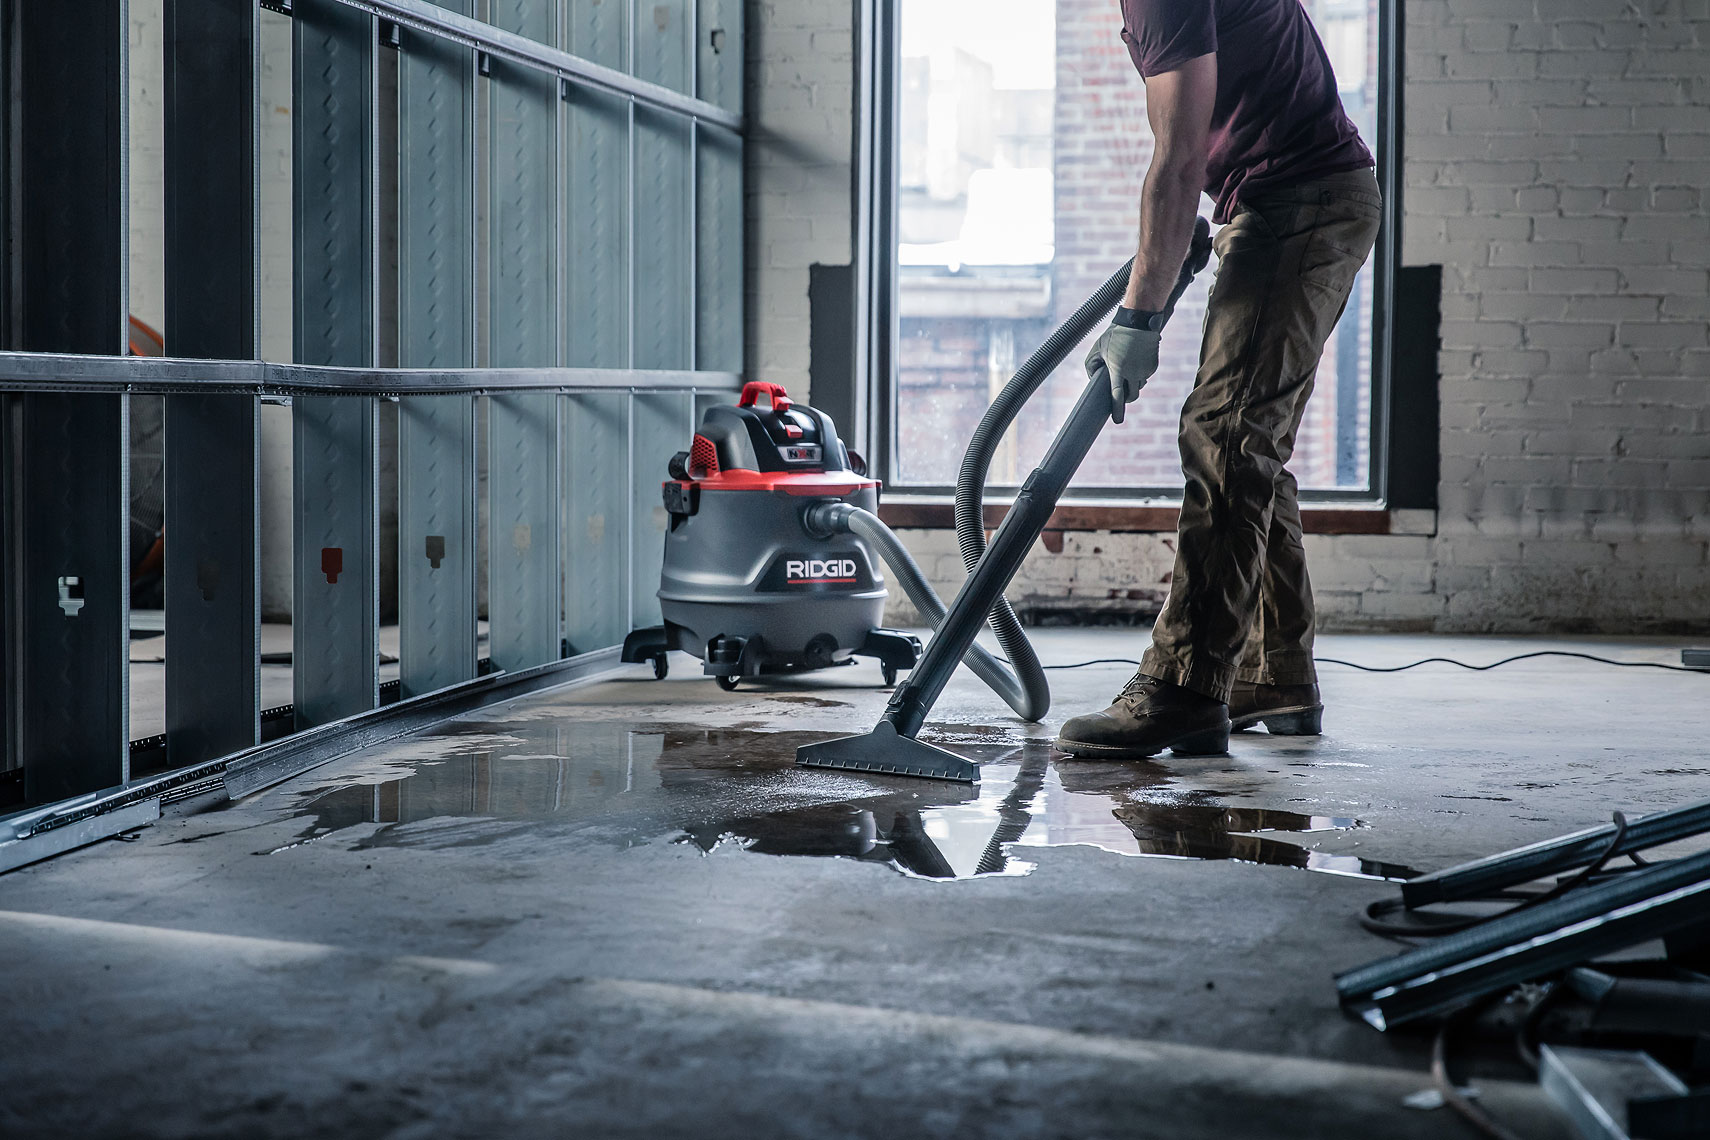 RIDGID RED RT1400M Wet/Dry Vacuum | John Fedele Product Photography